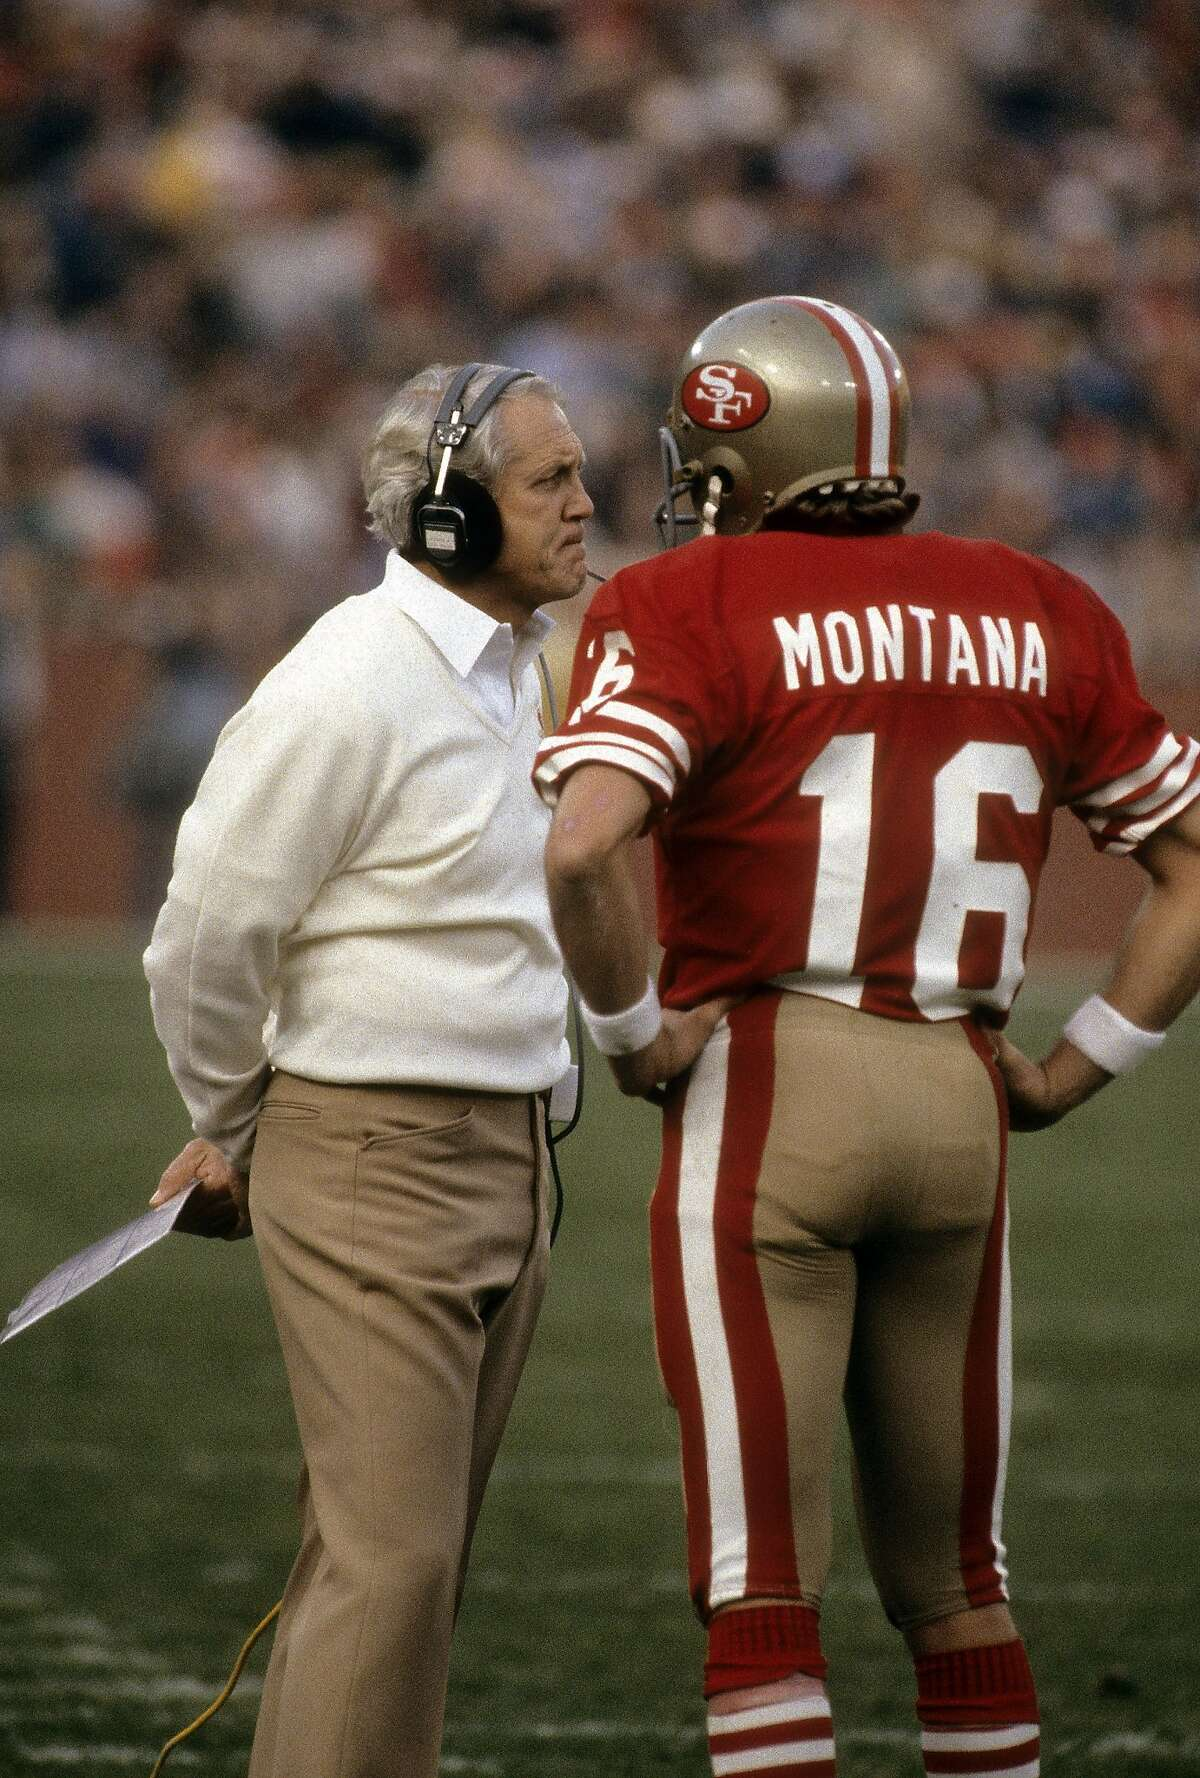 SAN FRANCISCO, CA - CIRCA 1980's:� Quarterback Joe Montana #16 of the San Francisco 49ers on the sideline talking with head coach Bill Walsh during an NFL football game mid circa 1980's at Candlestick Park in San Francisco, California. Montana played for the 49ers� from 1979-92 and Walsh coached from 1979-88. (Photo by Focus on Sport/Getty Images)